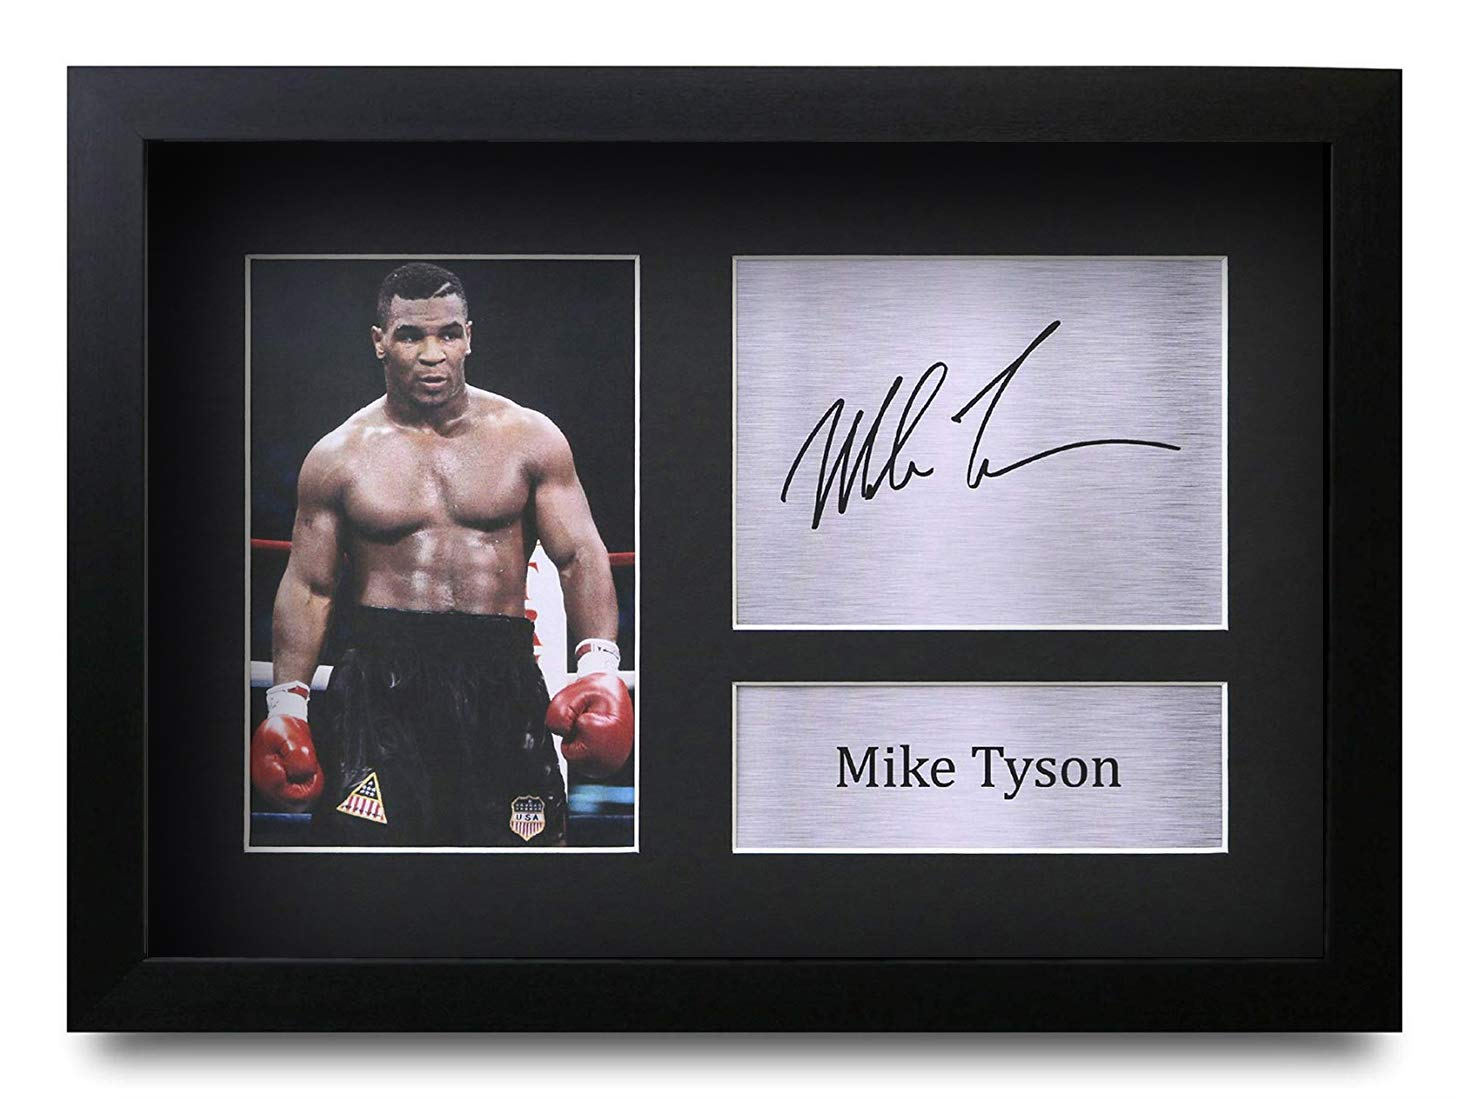 HWC Trading FR Mike Tyson Gift Signed FRAMED A4 Printed Autograph Boxing Gifts Print Photo Picture Display